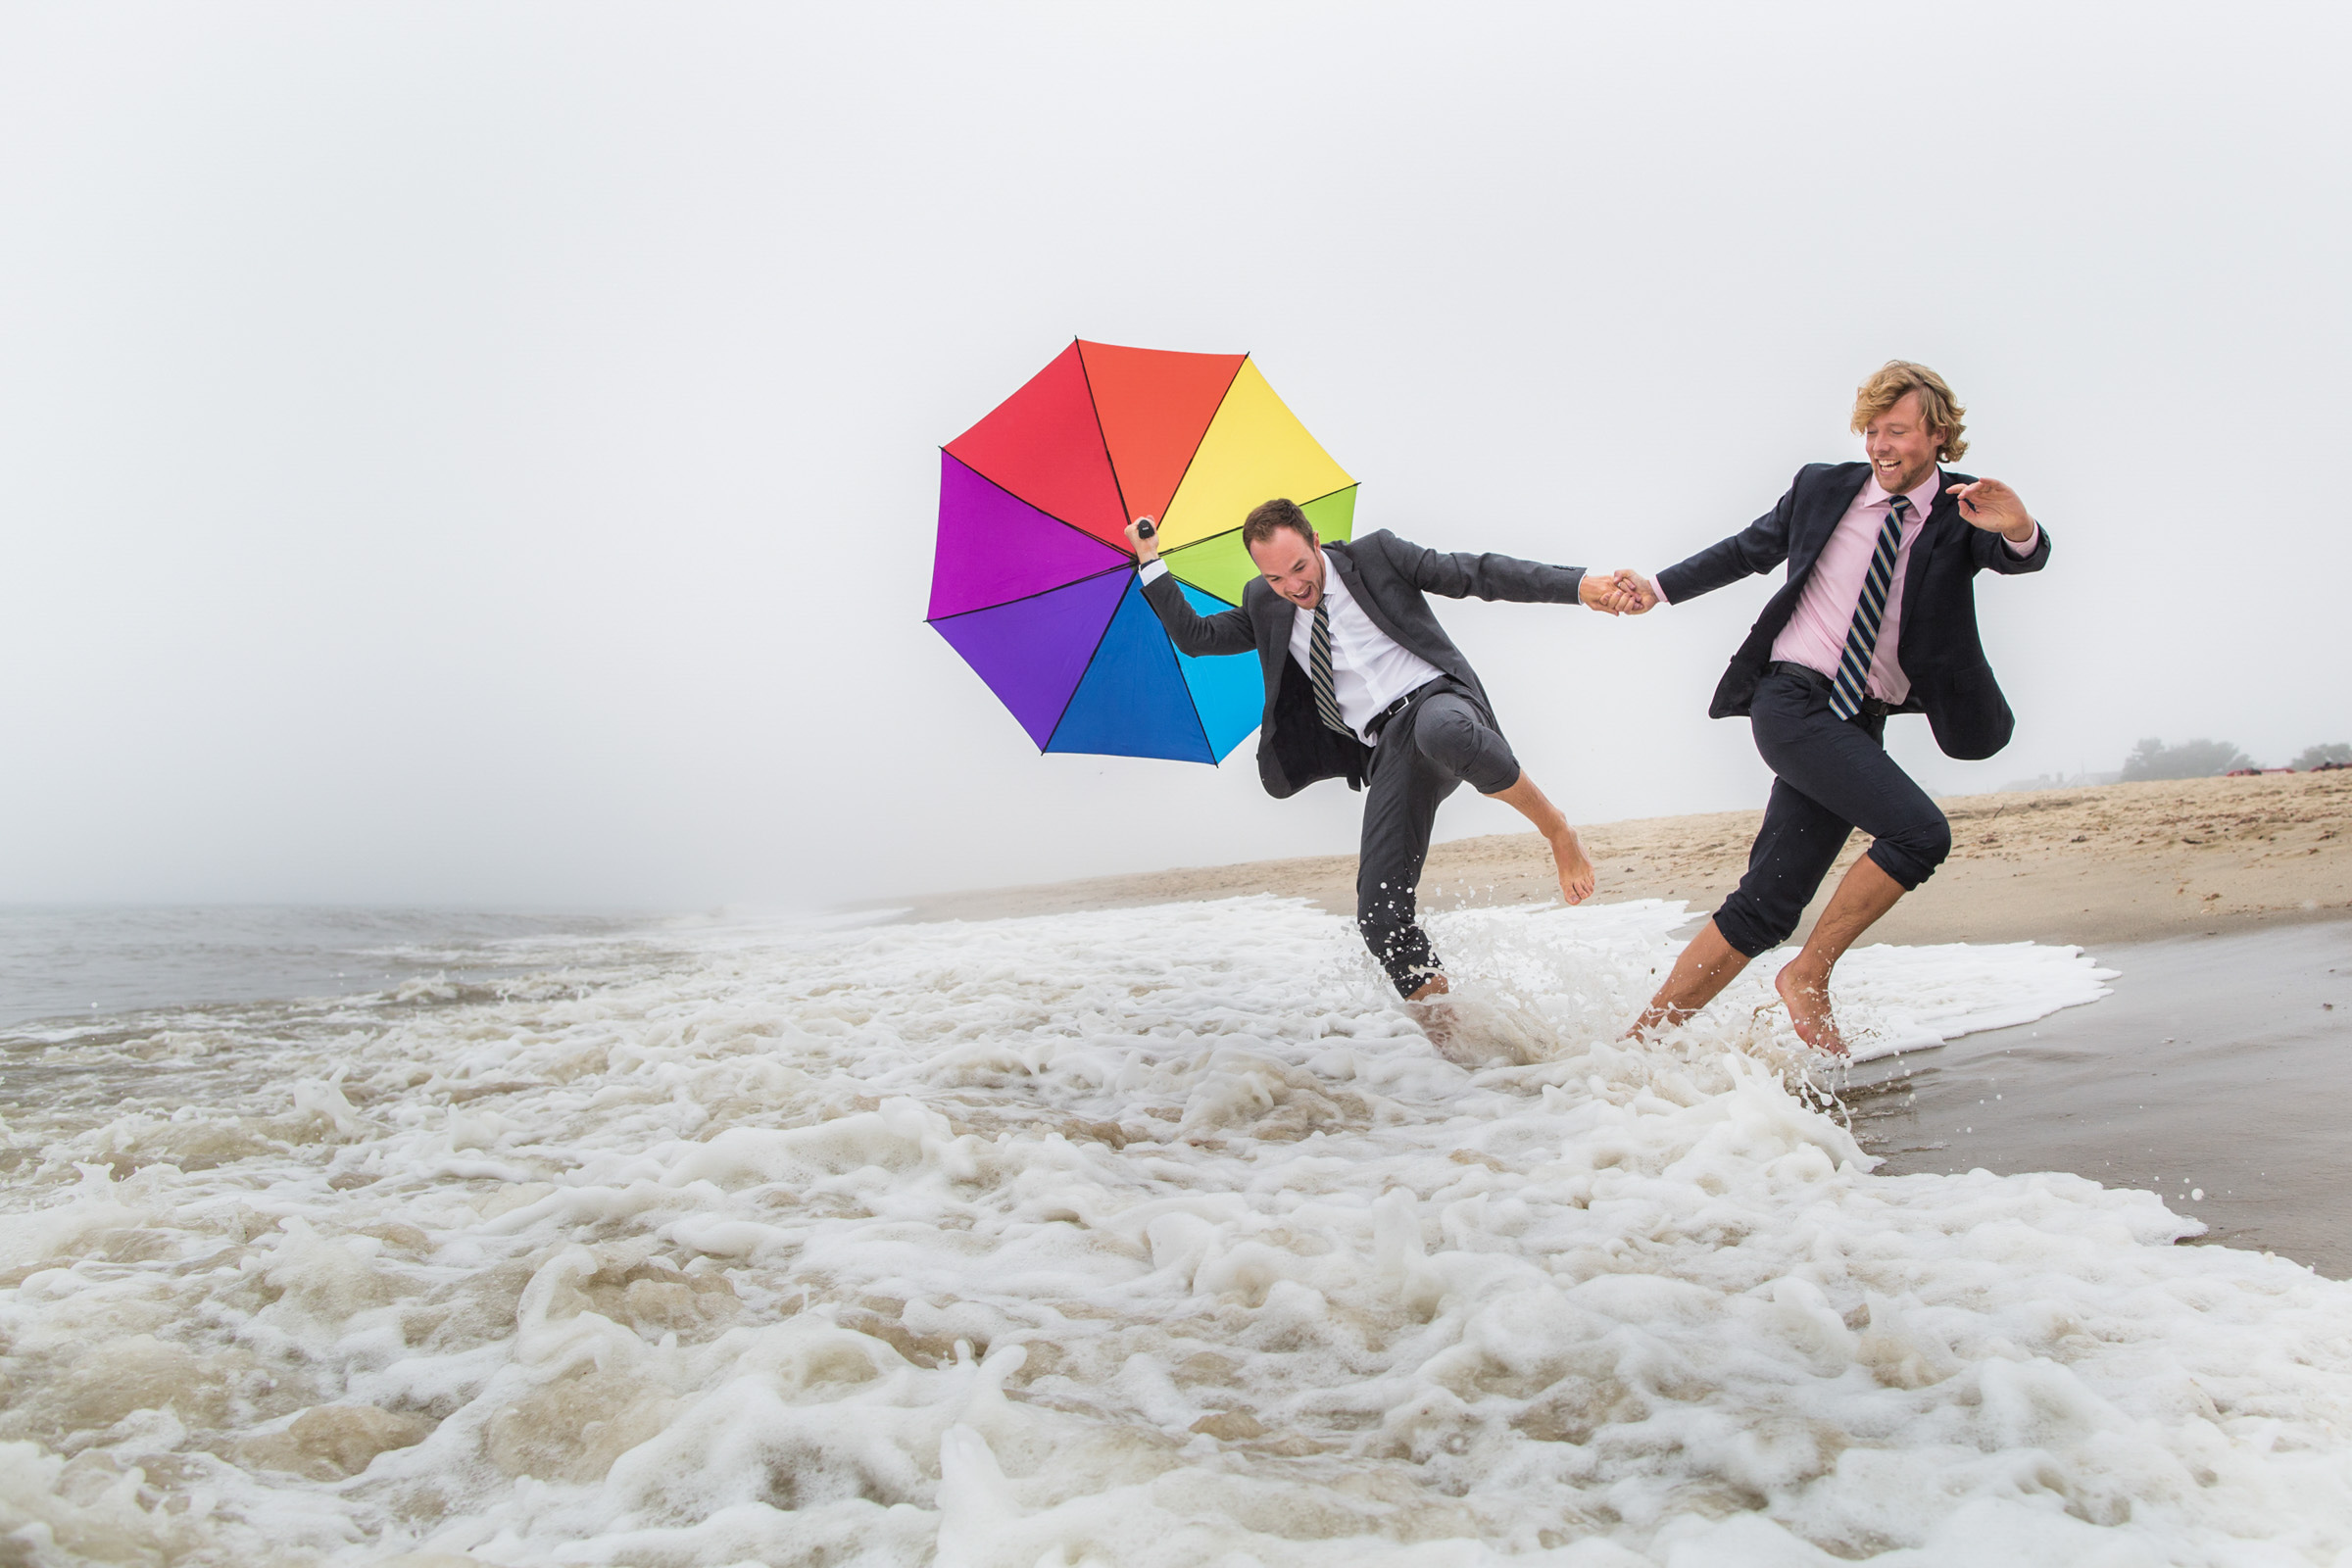 playful-grooms-at-surf-s-edge-with-rainbow-umbrella-katie-kaizer-photography